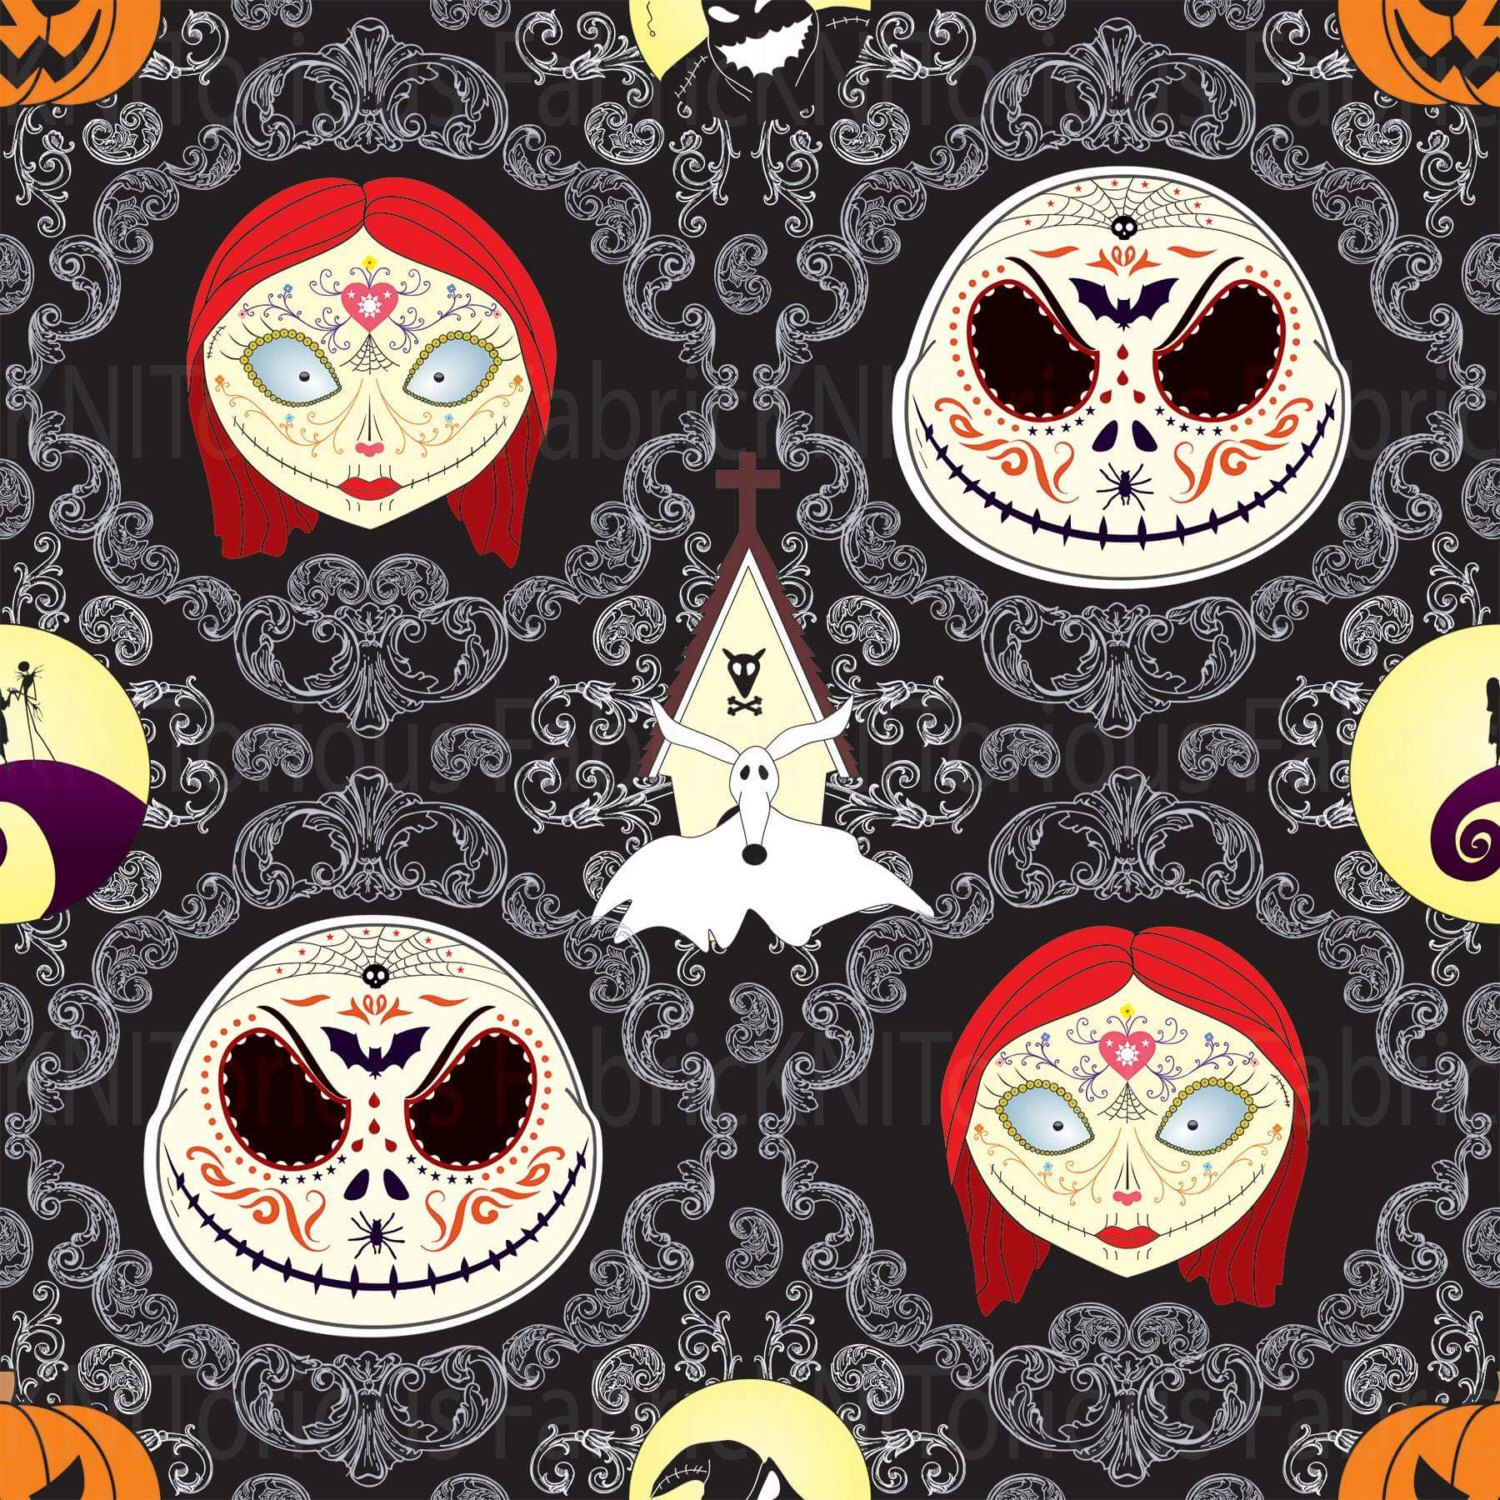 Nightmare before christmas fabric jack skellington fabric sally nightmare before christmas fabric jack skellington fabric sally zero oggie boogie man lycra nmbc halloween fabric tim burton by latourfabric on publicscrutiny Images